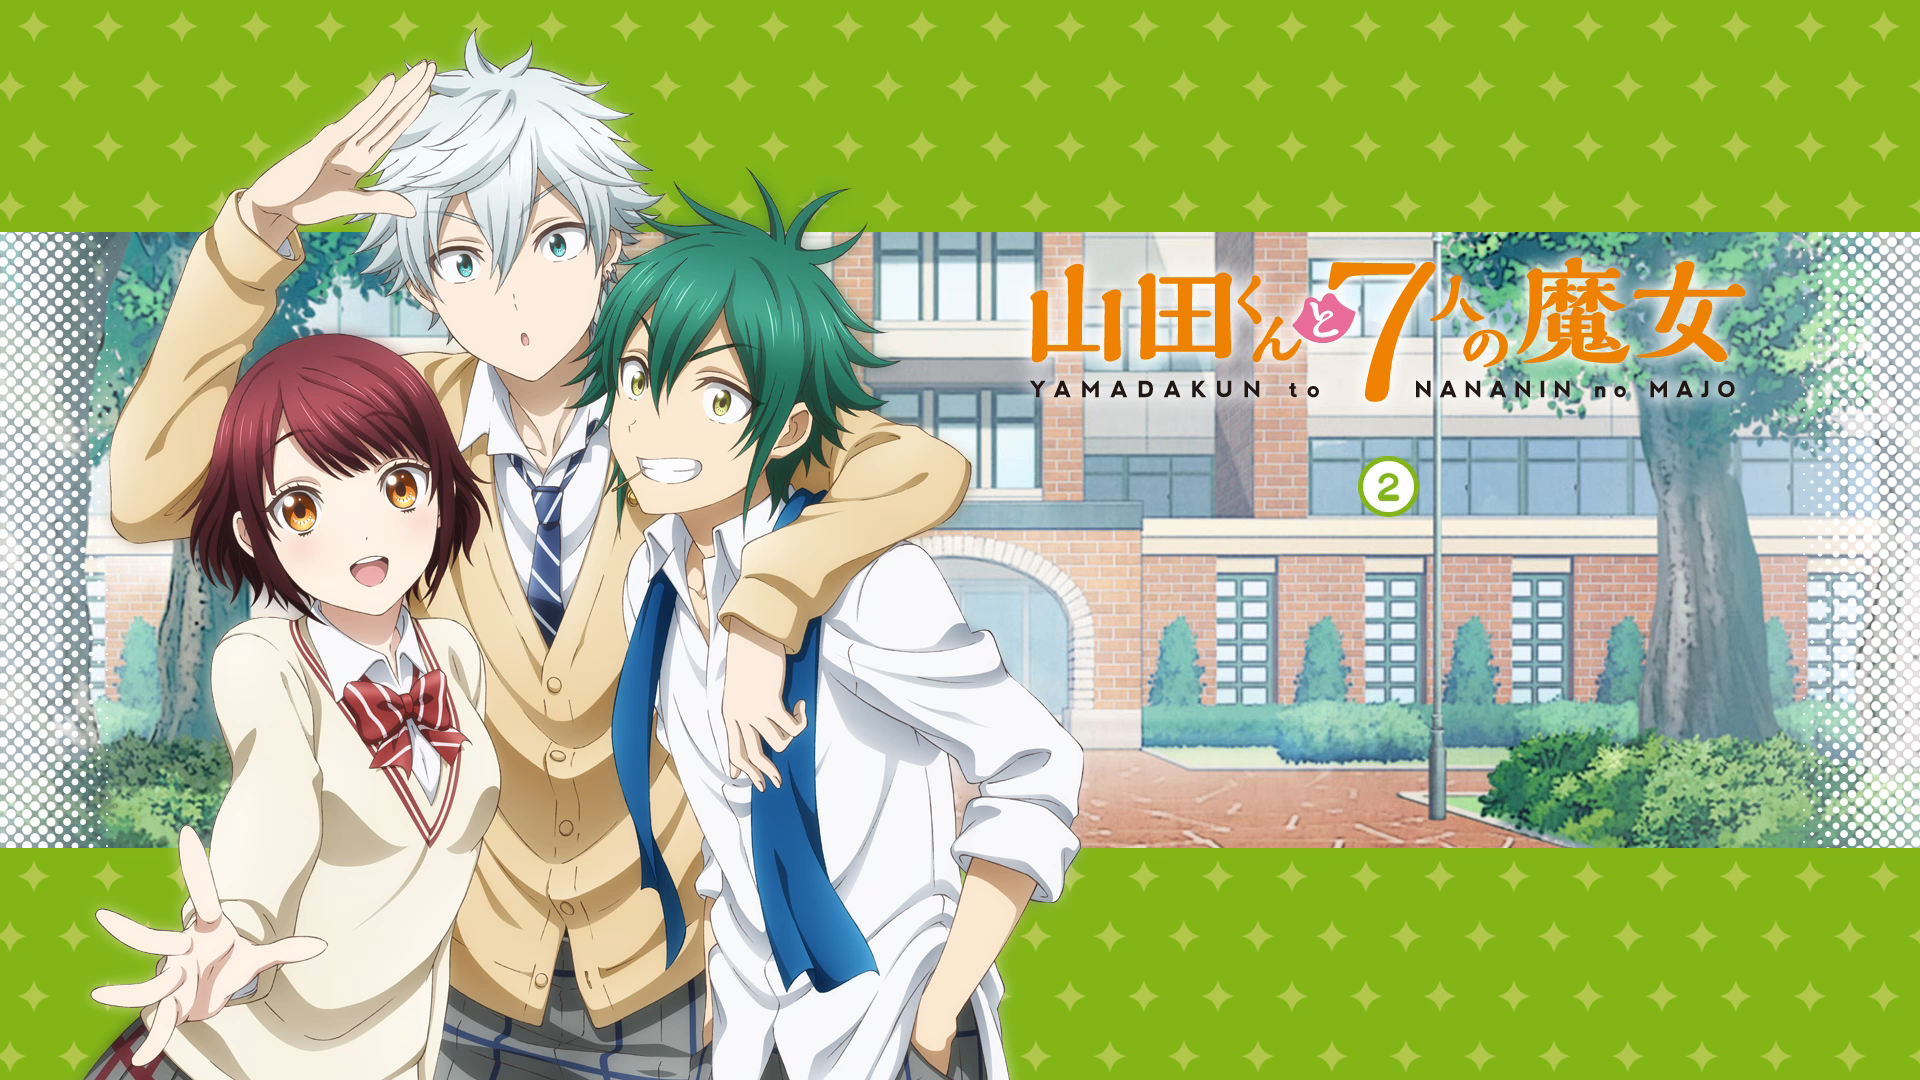 Yamada Kun And The Seven Witches Hd Wallpaper Background Image